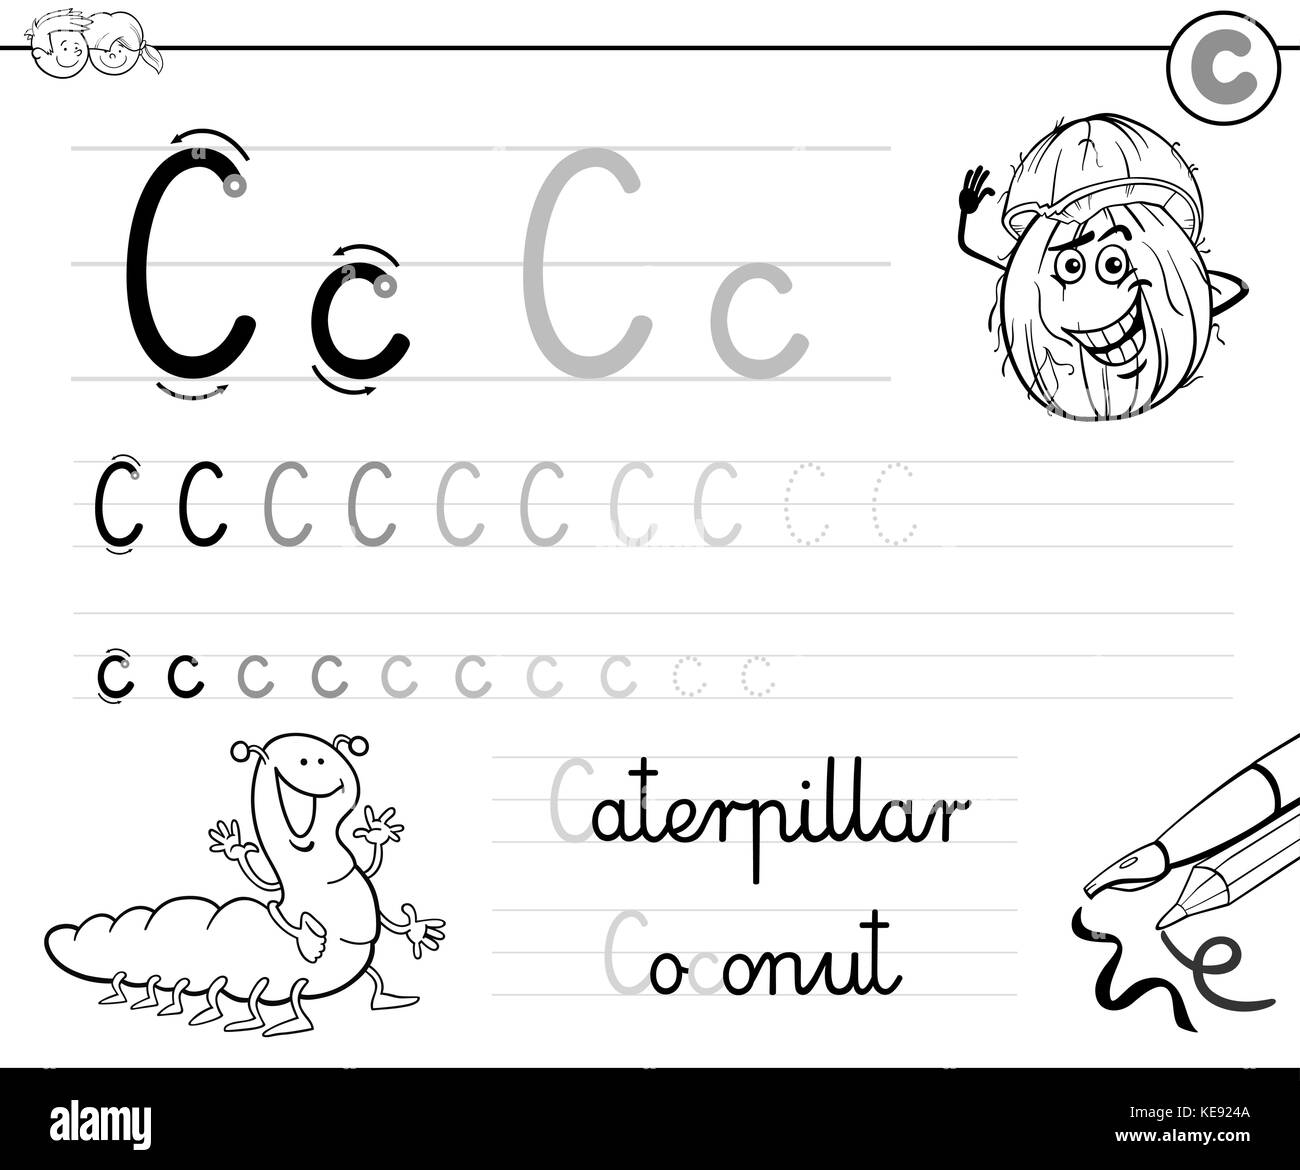 Coloring Alphabet For Kids Stock Photos Amp Coloring